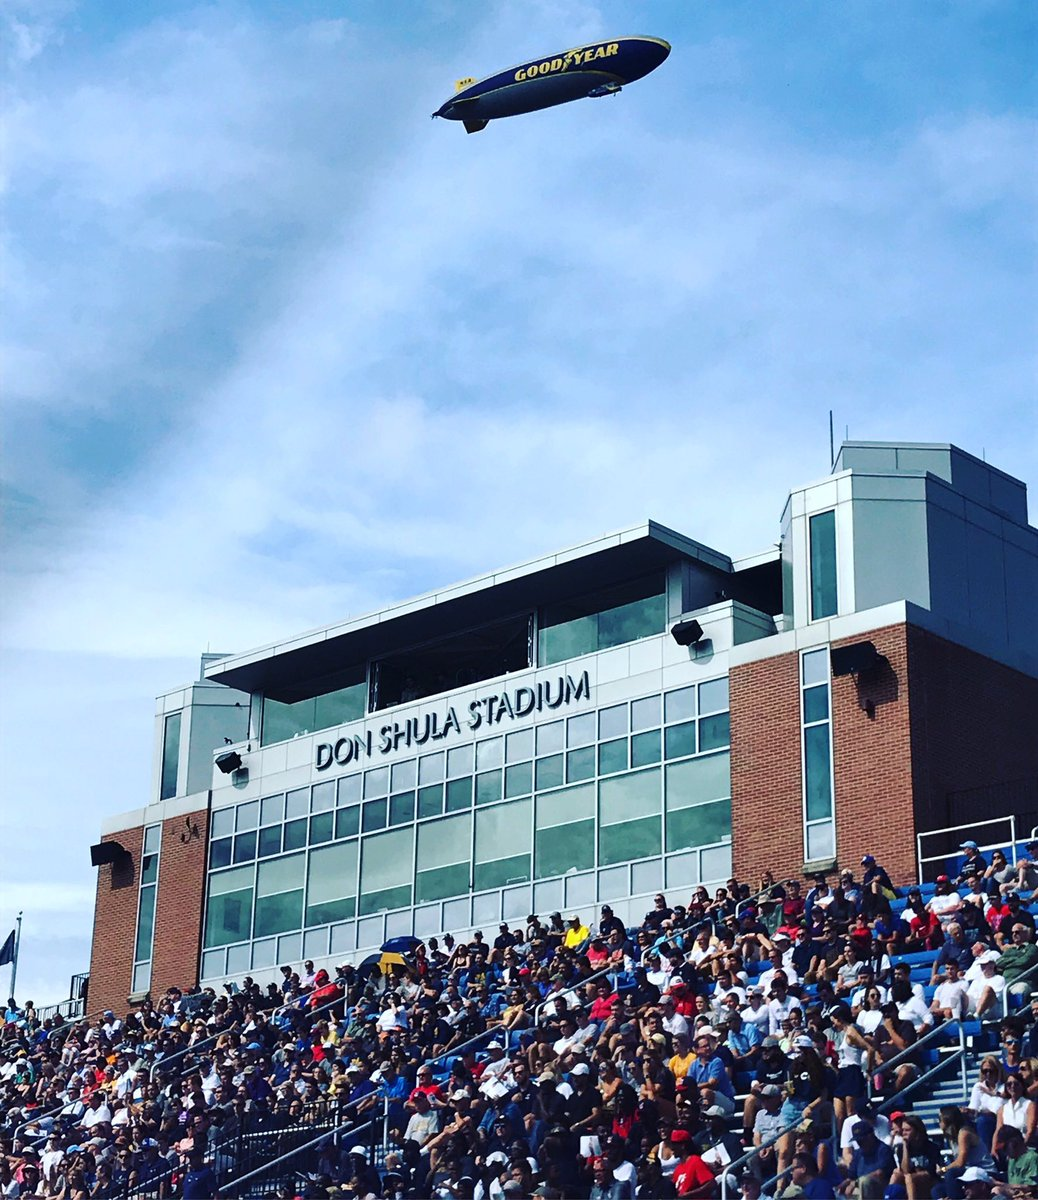 Yesterday: @JCUFootball's Don Shula Stadium. Today: @DonShula's stadium. There's levels to this.